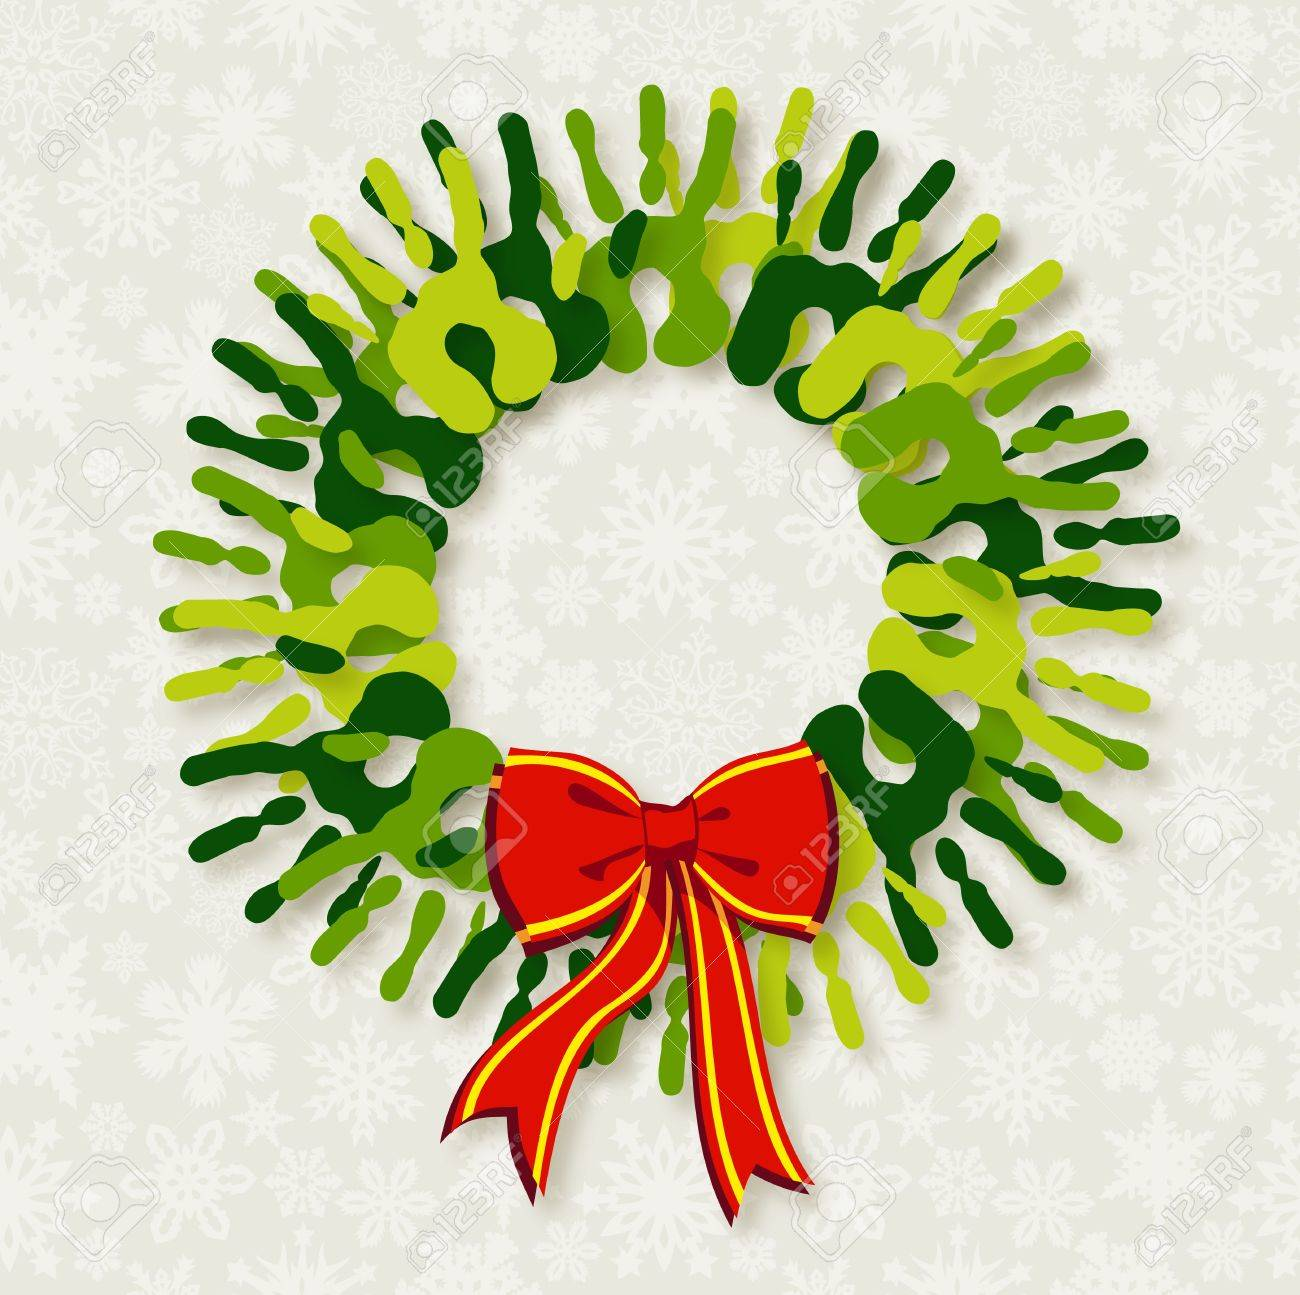 Go green diversity hands in Christmas wreath.  file with a drop shadow effect in multiply mode at 75% level. This shadow is in the corresponding element and included as style. Stock Vector - 16572007